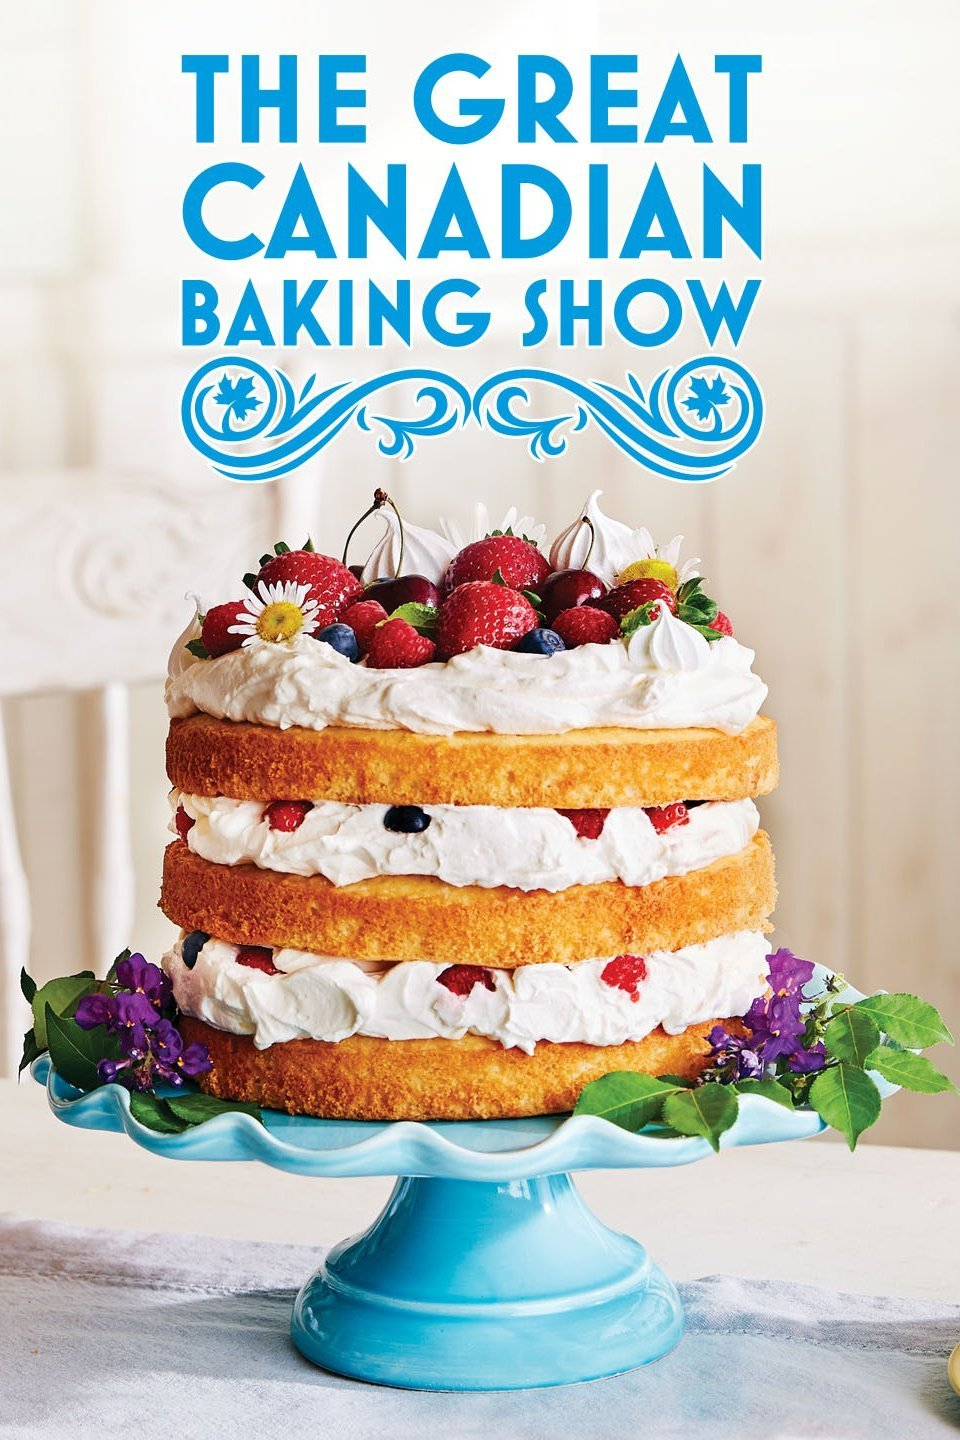 The Great Canadian Baking Show Poster Art